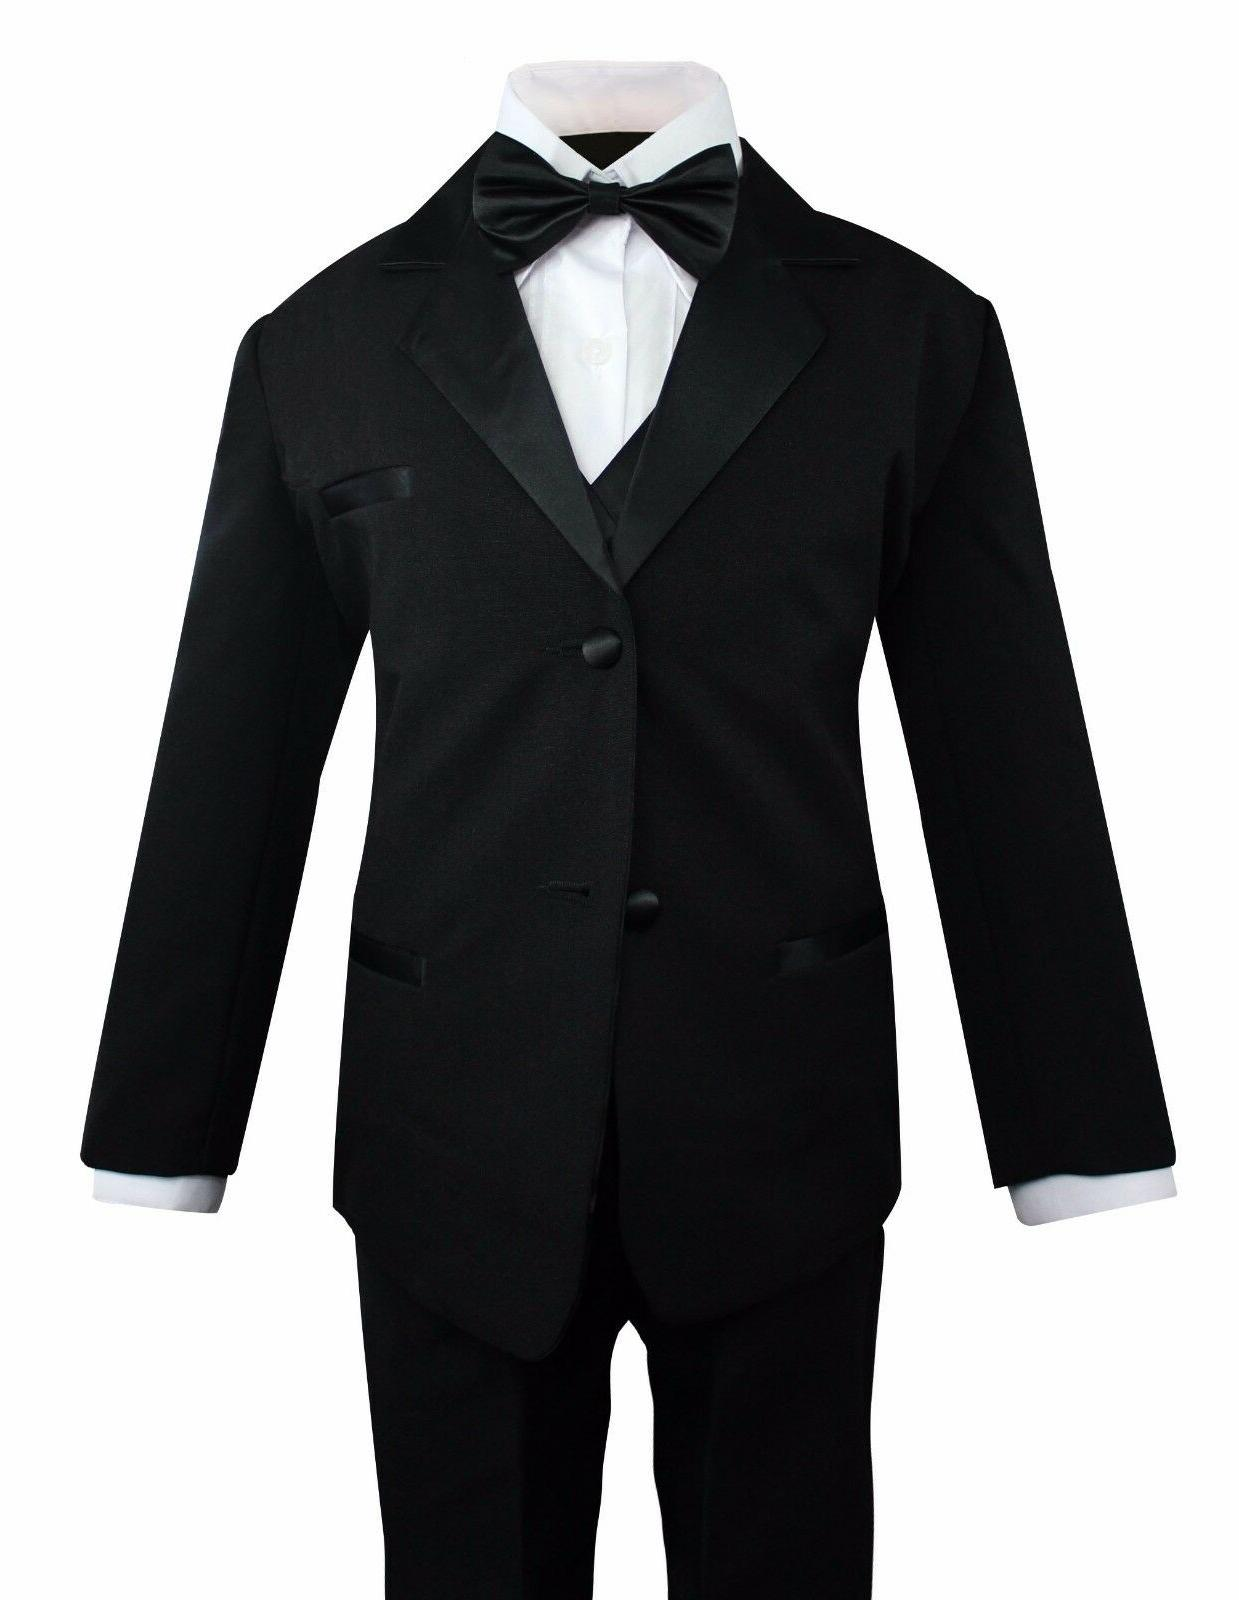 Formal Toddler Boys Tuxedo 5 pieces Set with Satin Vest and